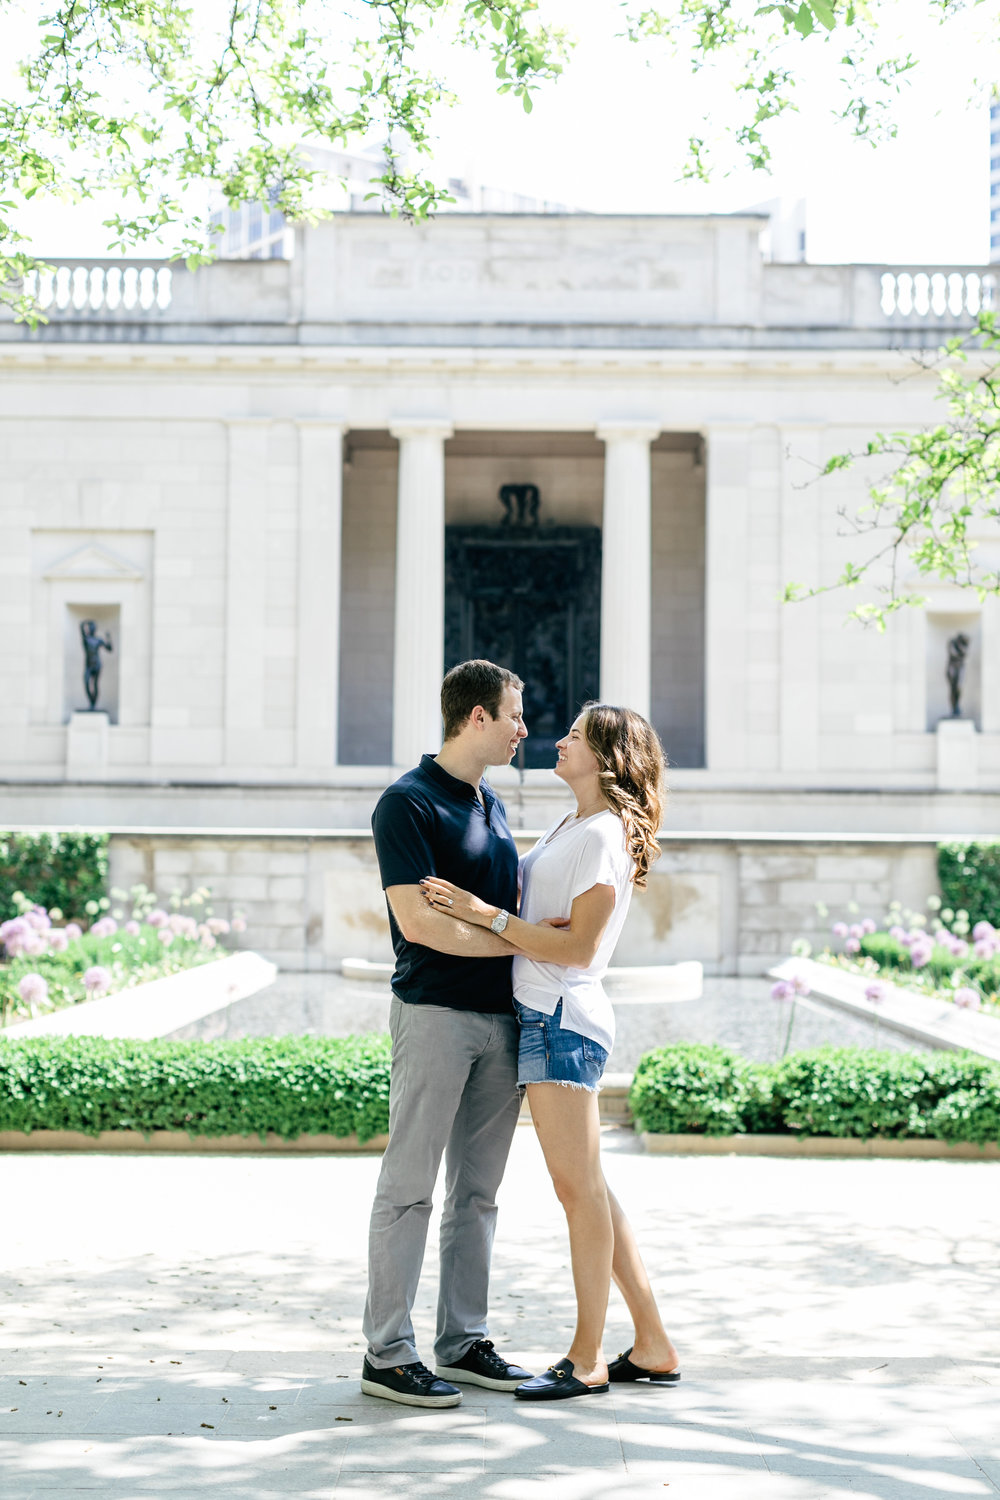 photography-natural-candid-engaged-proposal-philadelphia-wedding-rodin museum-barnes foundation-parkway-modern-lifestyle-19.JPG